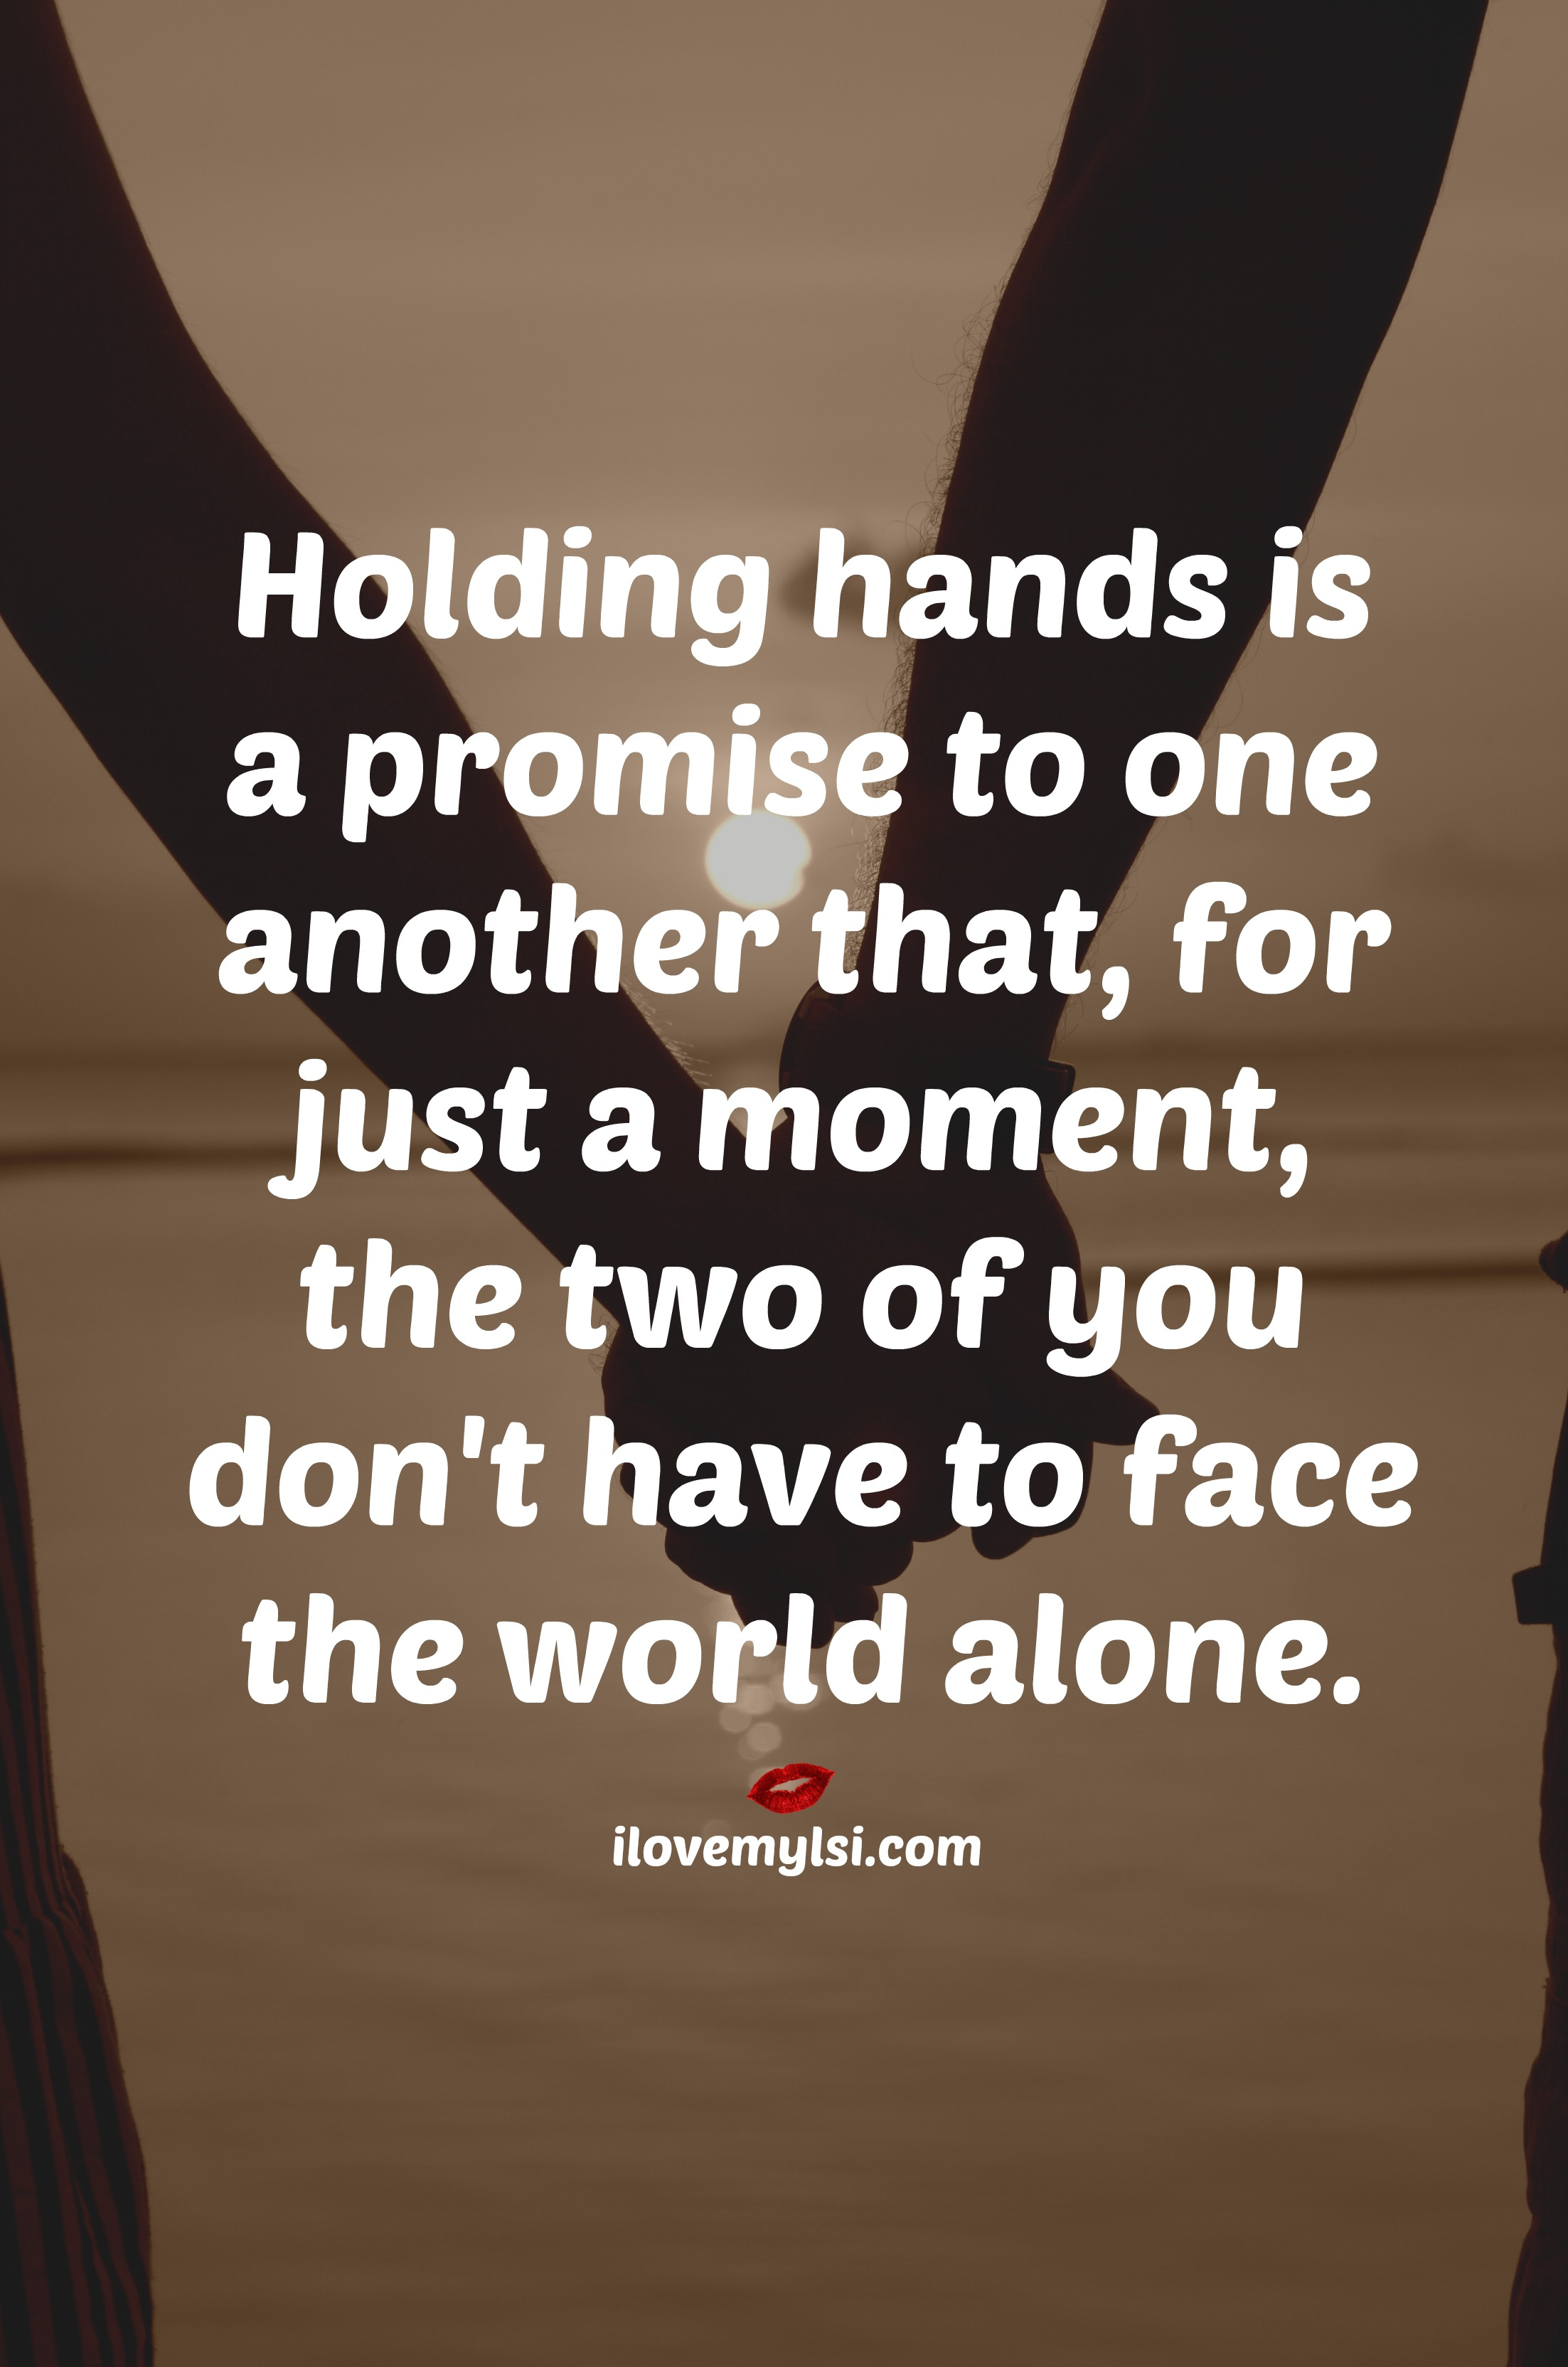 Love Quotes For Him Holding Hands : Holding hands is a promise to one another that for just a moment, the ...